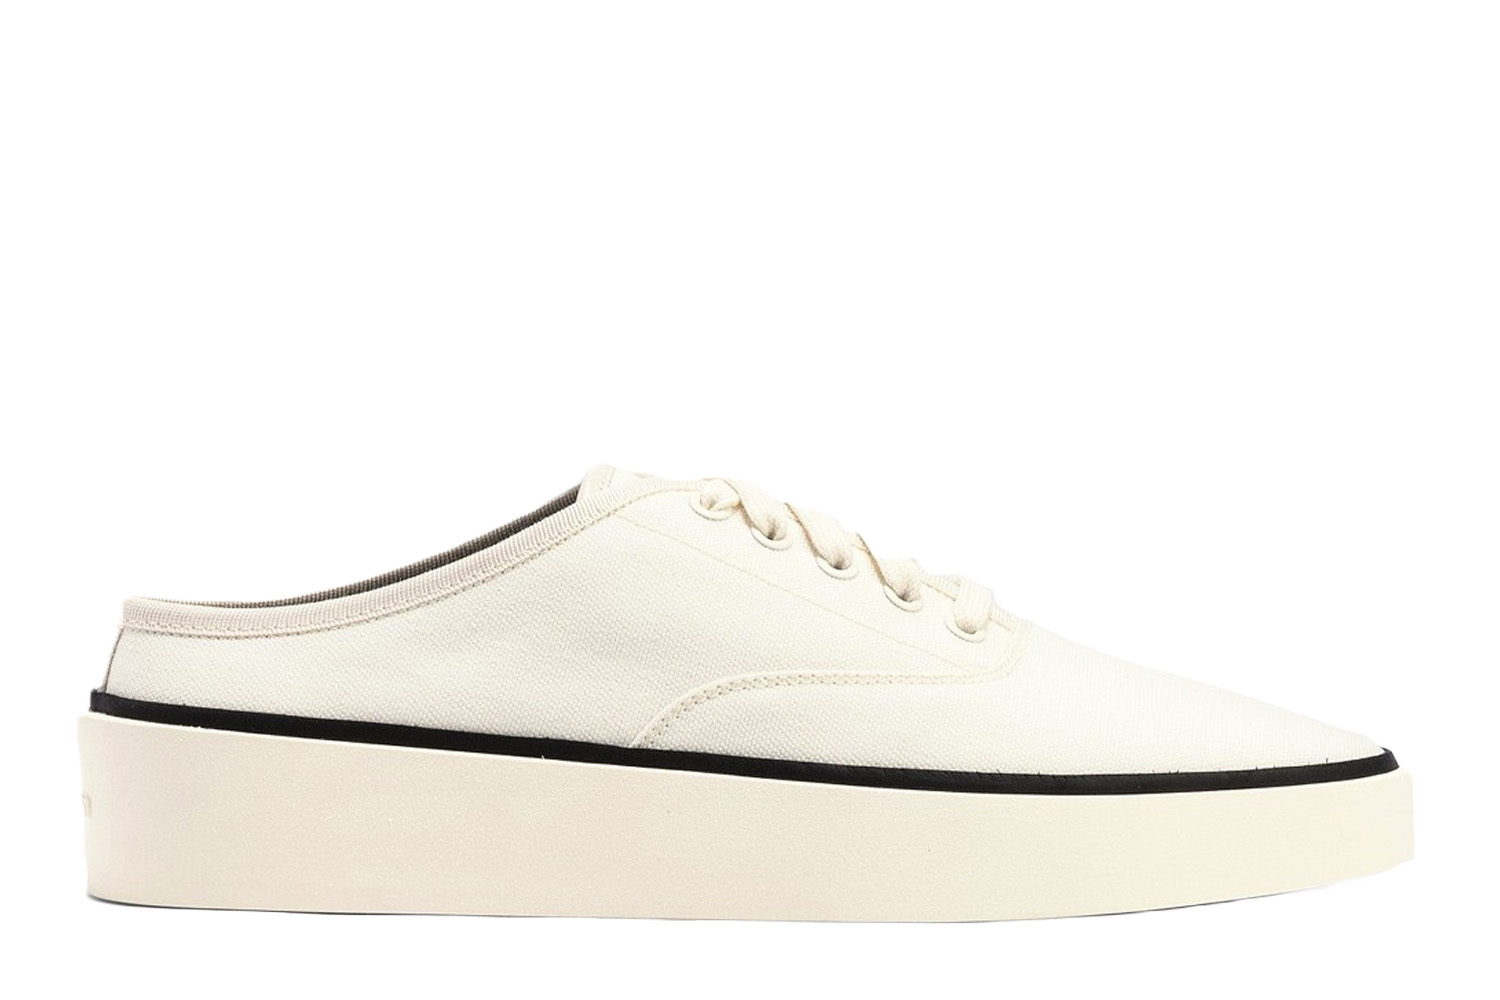 Fear of God Canvas 101 Backless Sneaker, $498